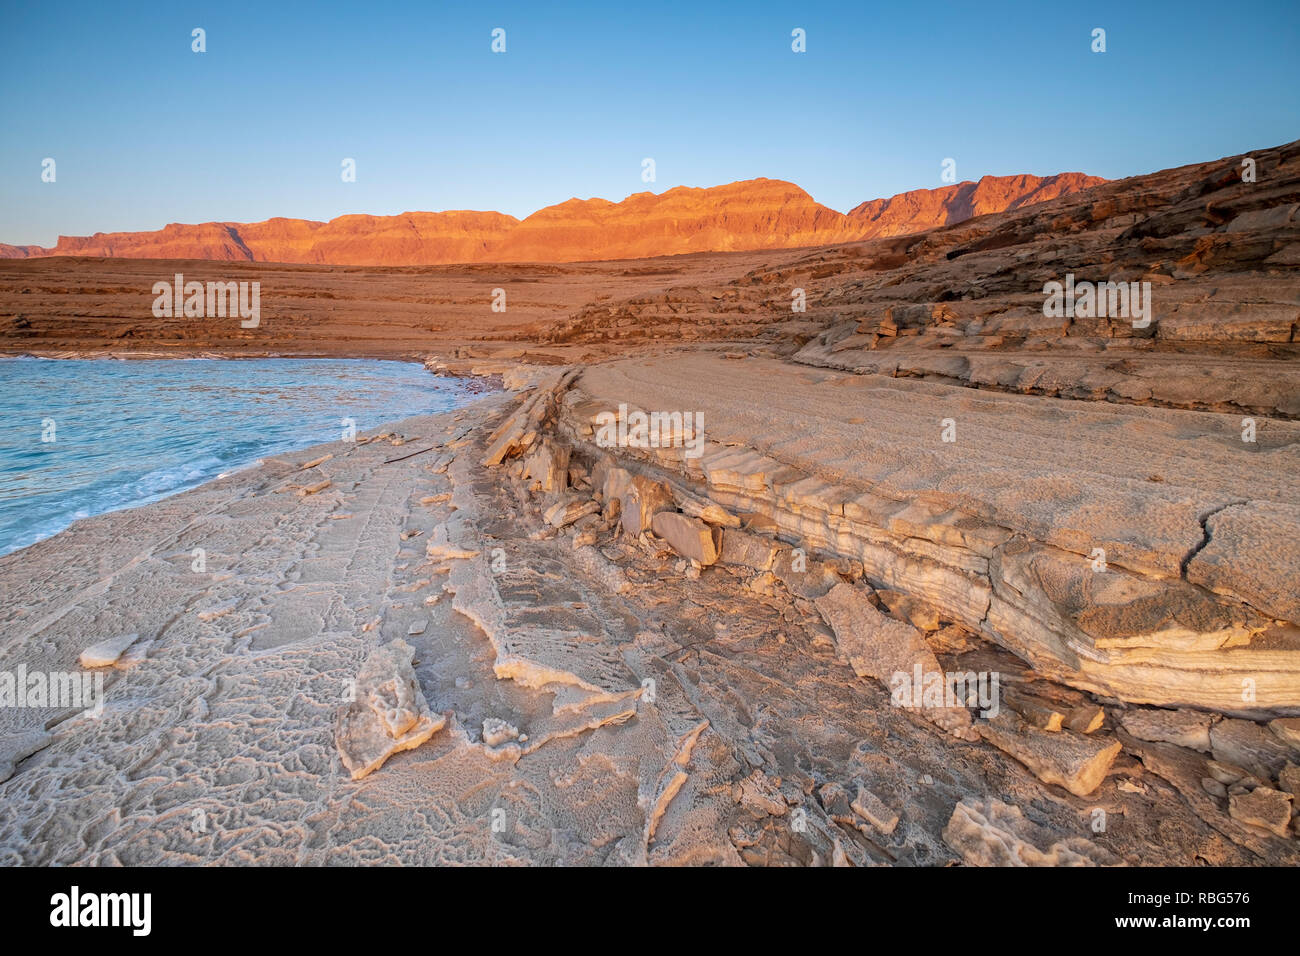 Marl stone formations. Eroded cliffs made of marl. Marl is a calcium carbonate-rich, mudstone formed from sedimentary deposits. Photographed in Israel - Stock Image